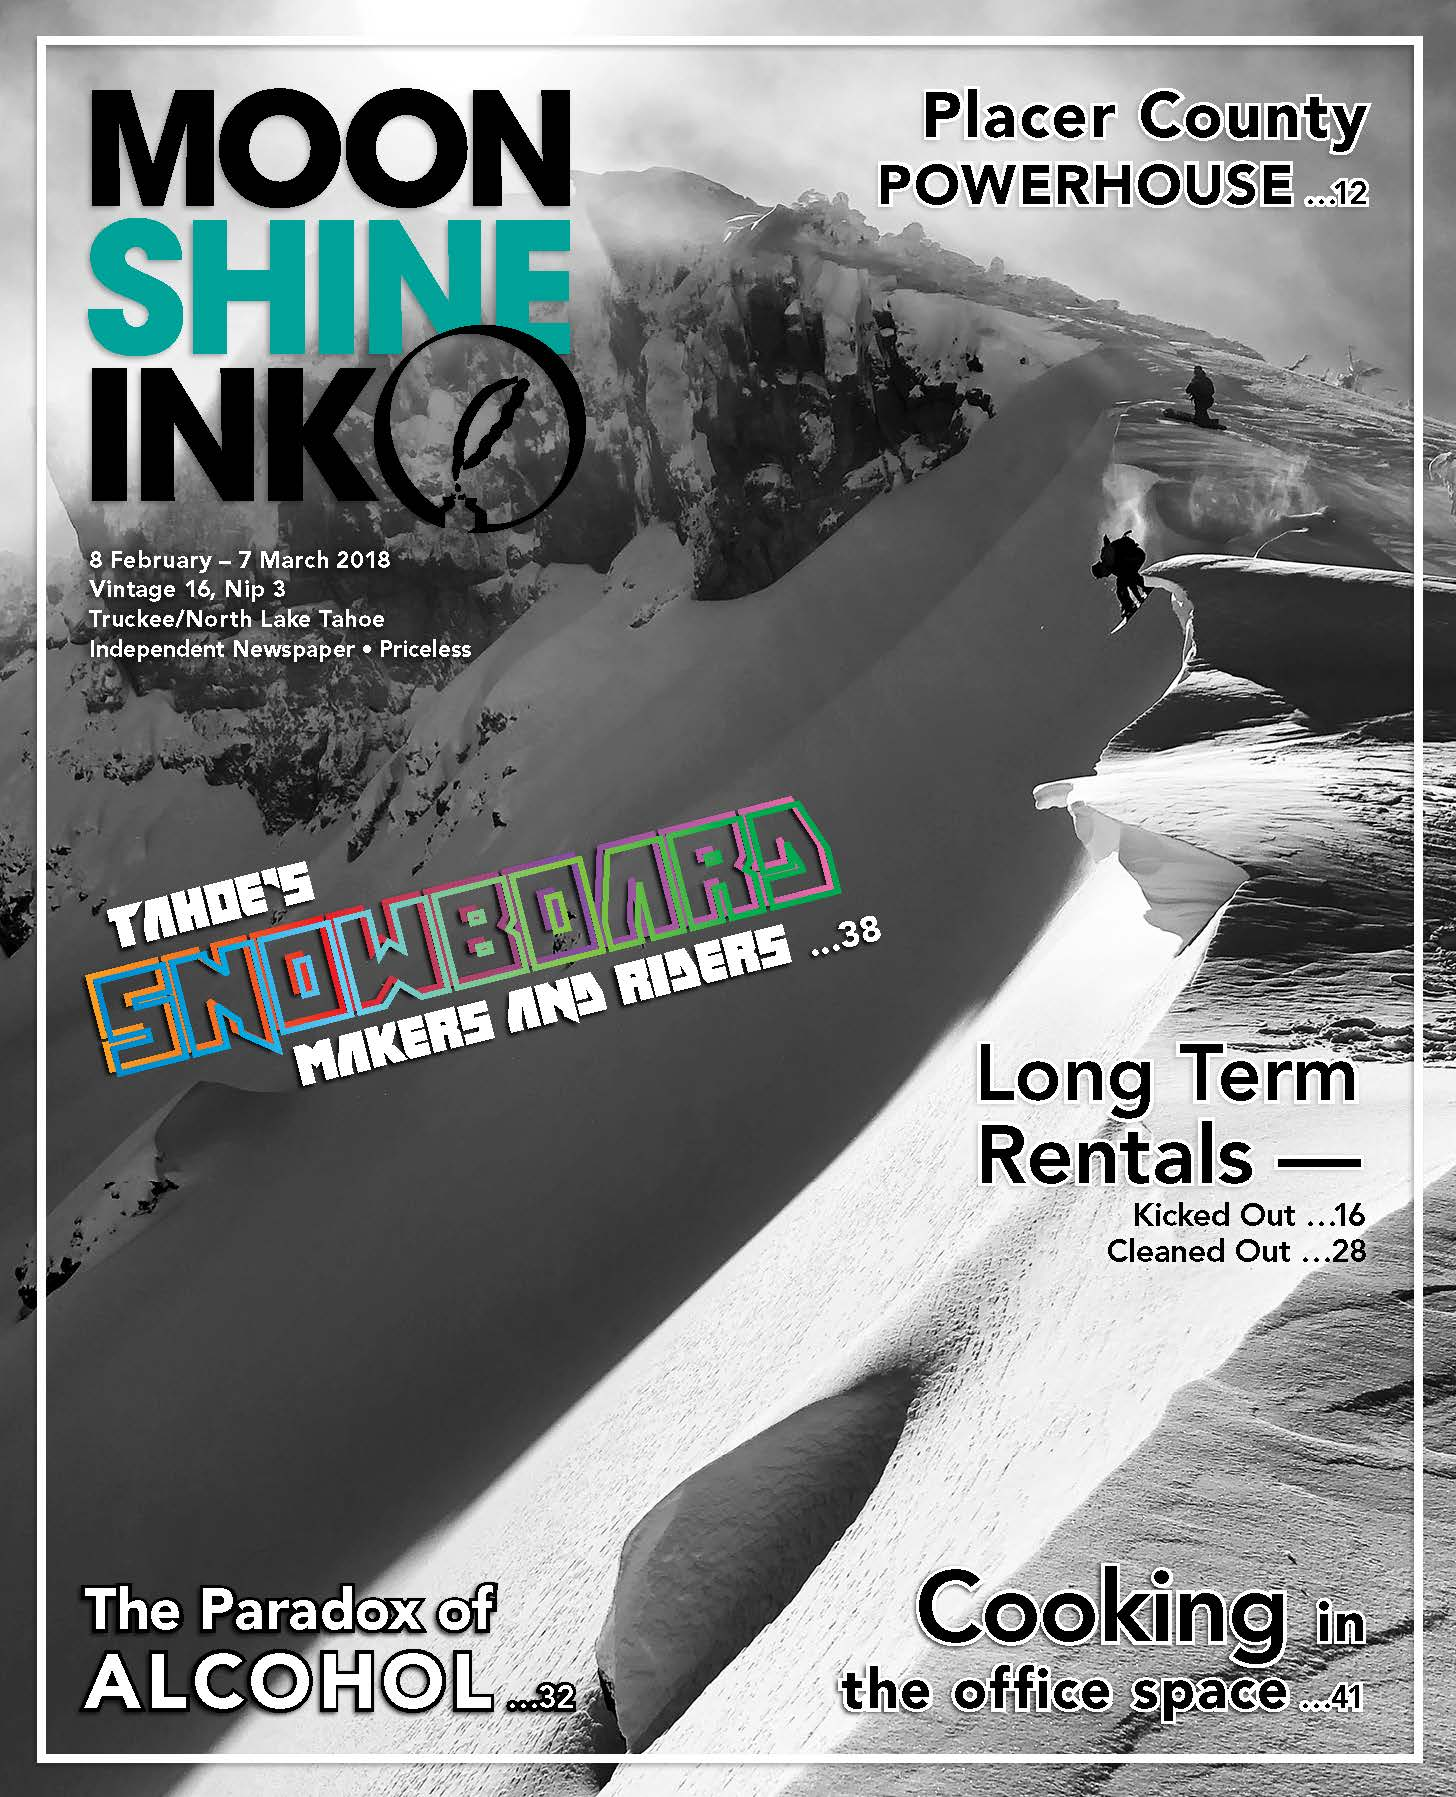 Moonshine Ink - Storing the Tahoe LifestyleFebruary 08-March 07 2018 Issue // Our firm provides some helpful tips on how to store the Tahoe Lifestyle. Tahoe is a year round playground and those that take full advantage of all it has to offer often have kayaks, paddle boards, seasonal tires and more. De-clutter and de-stress your life.